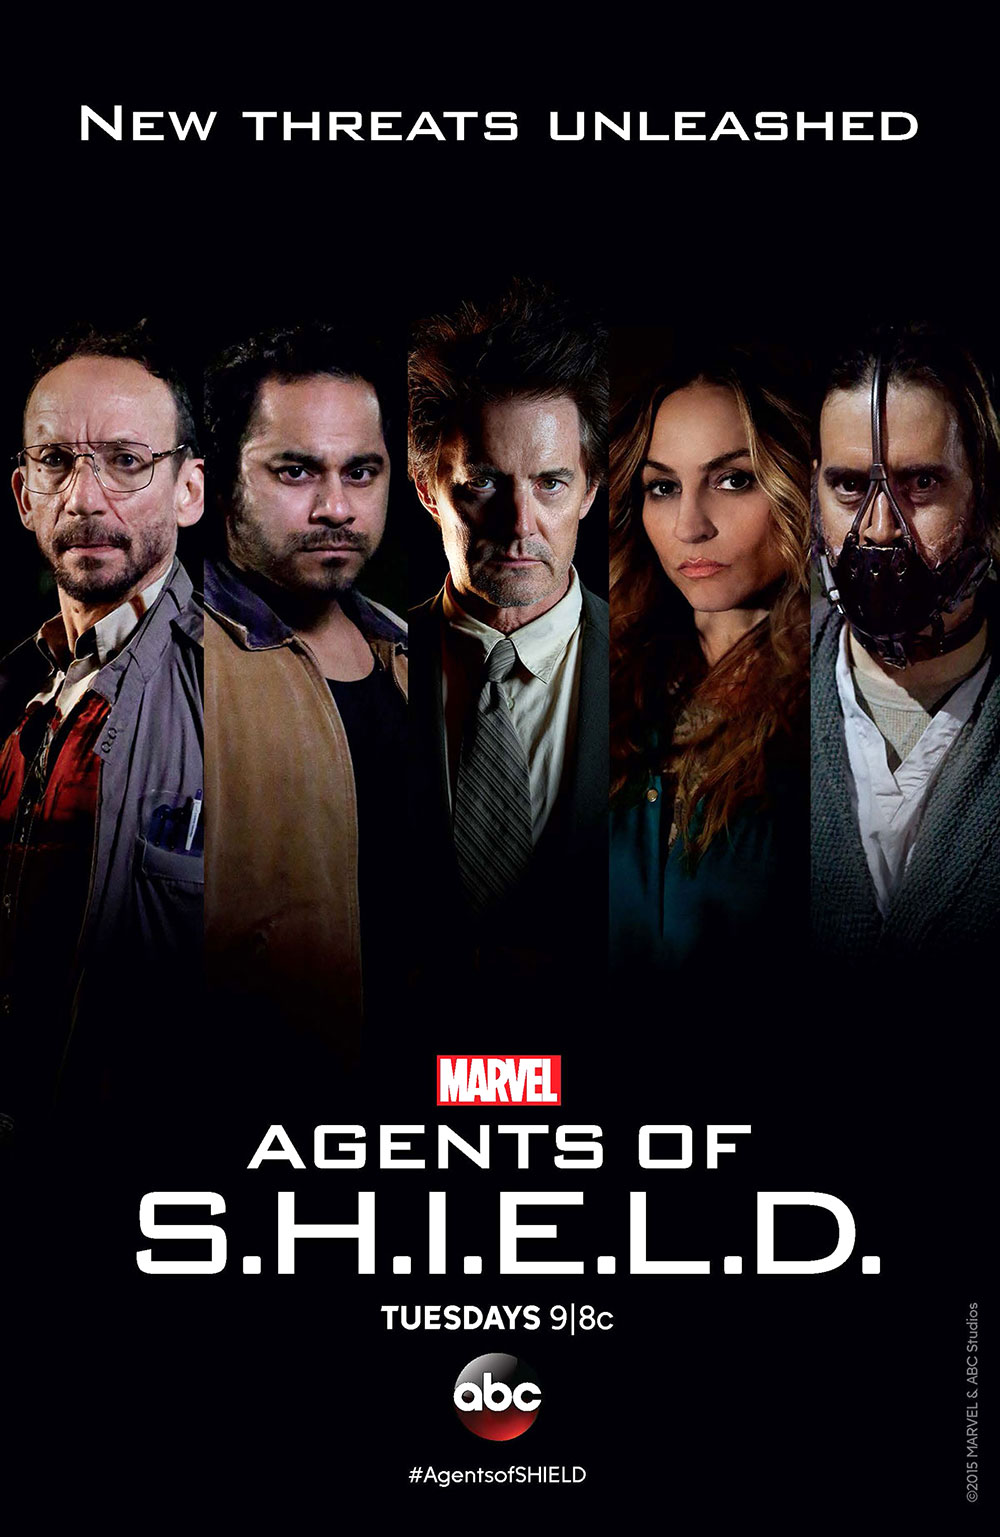 Marvel's Agents of S.H.I.E.L.D. Season 2 13 poster